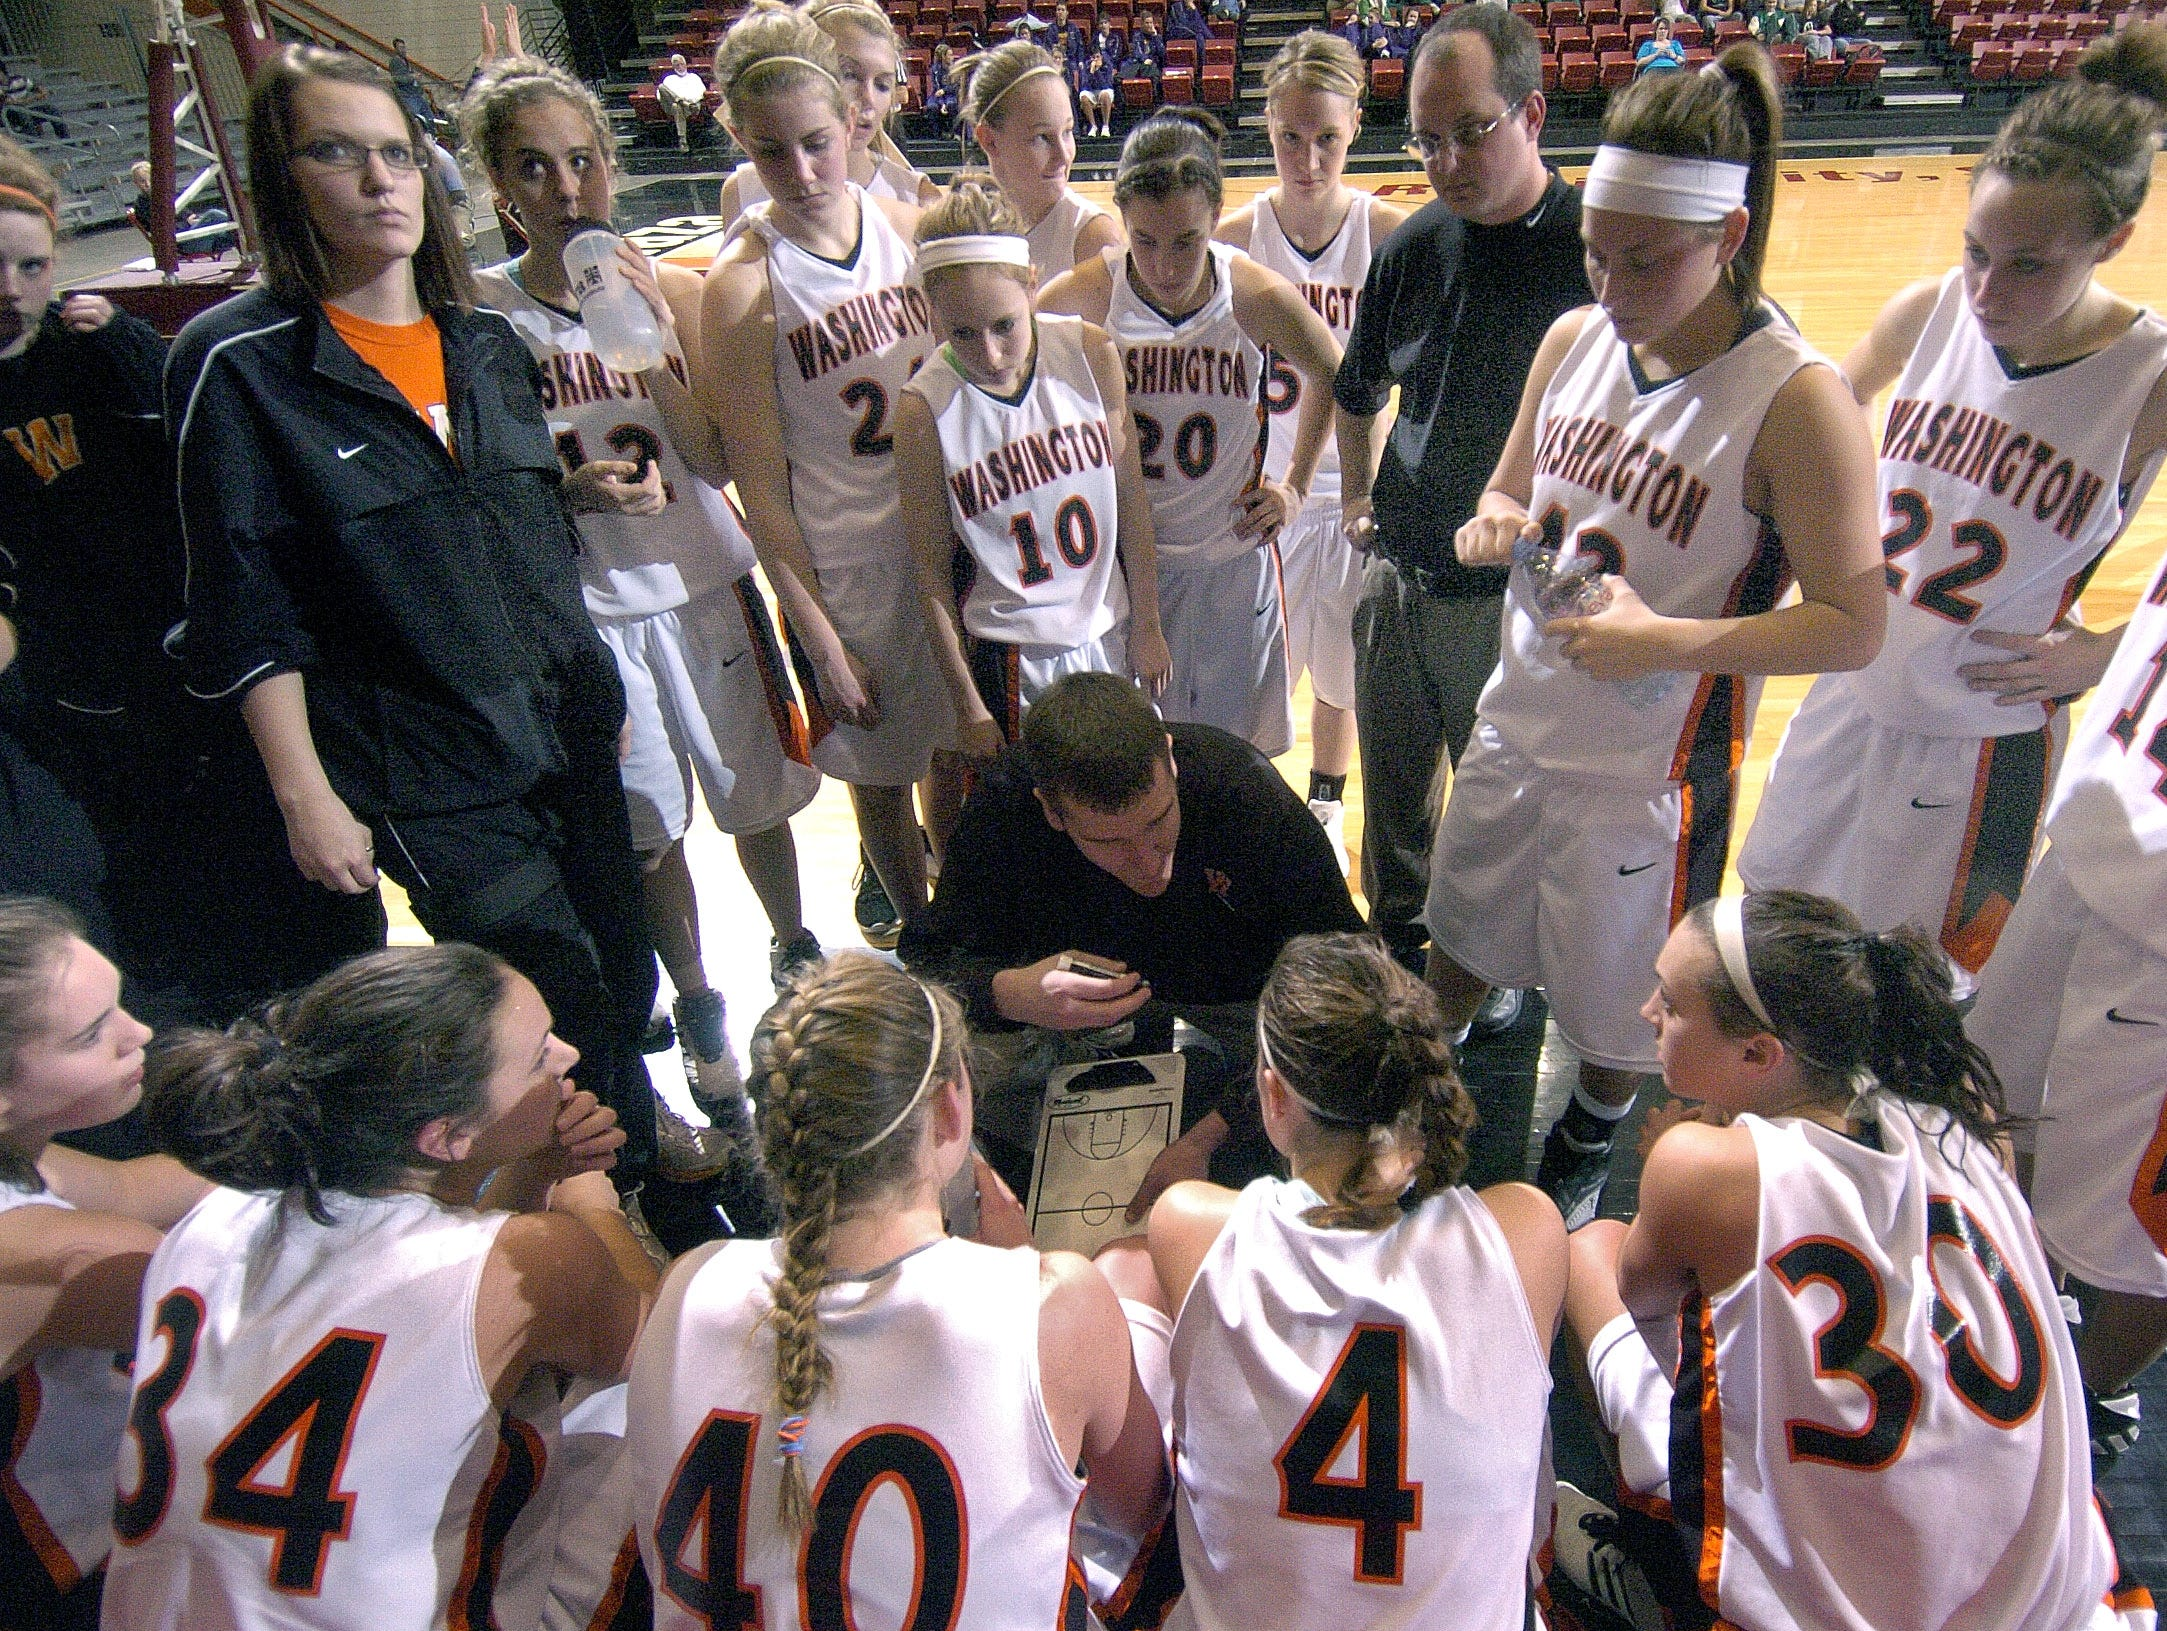 Washington coach Nate Malchow talks to his players during a time out. (Lloyd B. Cunningham/Argus Leader) 6 March 2008